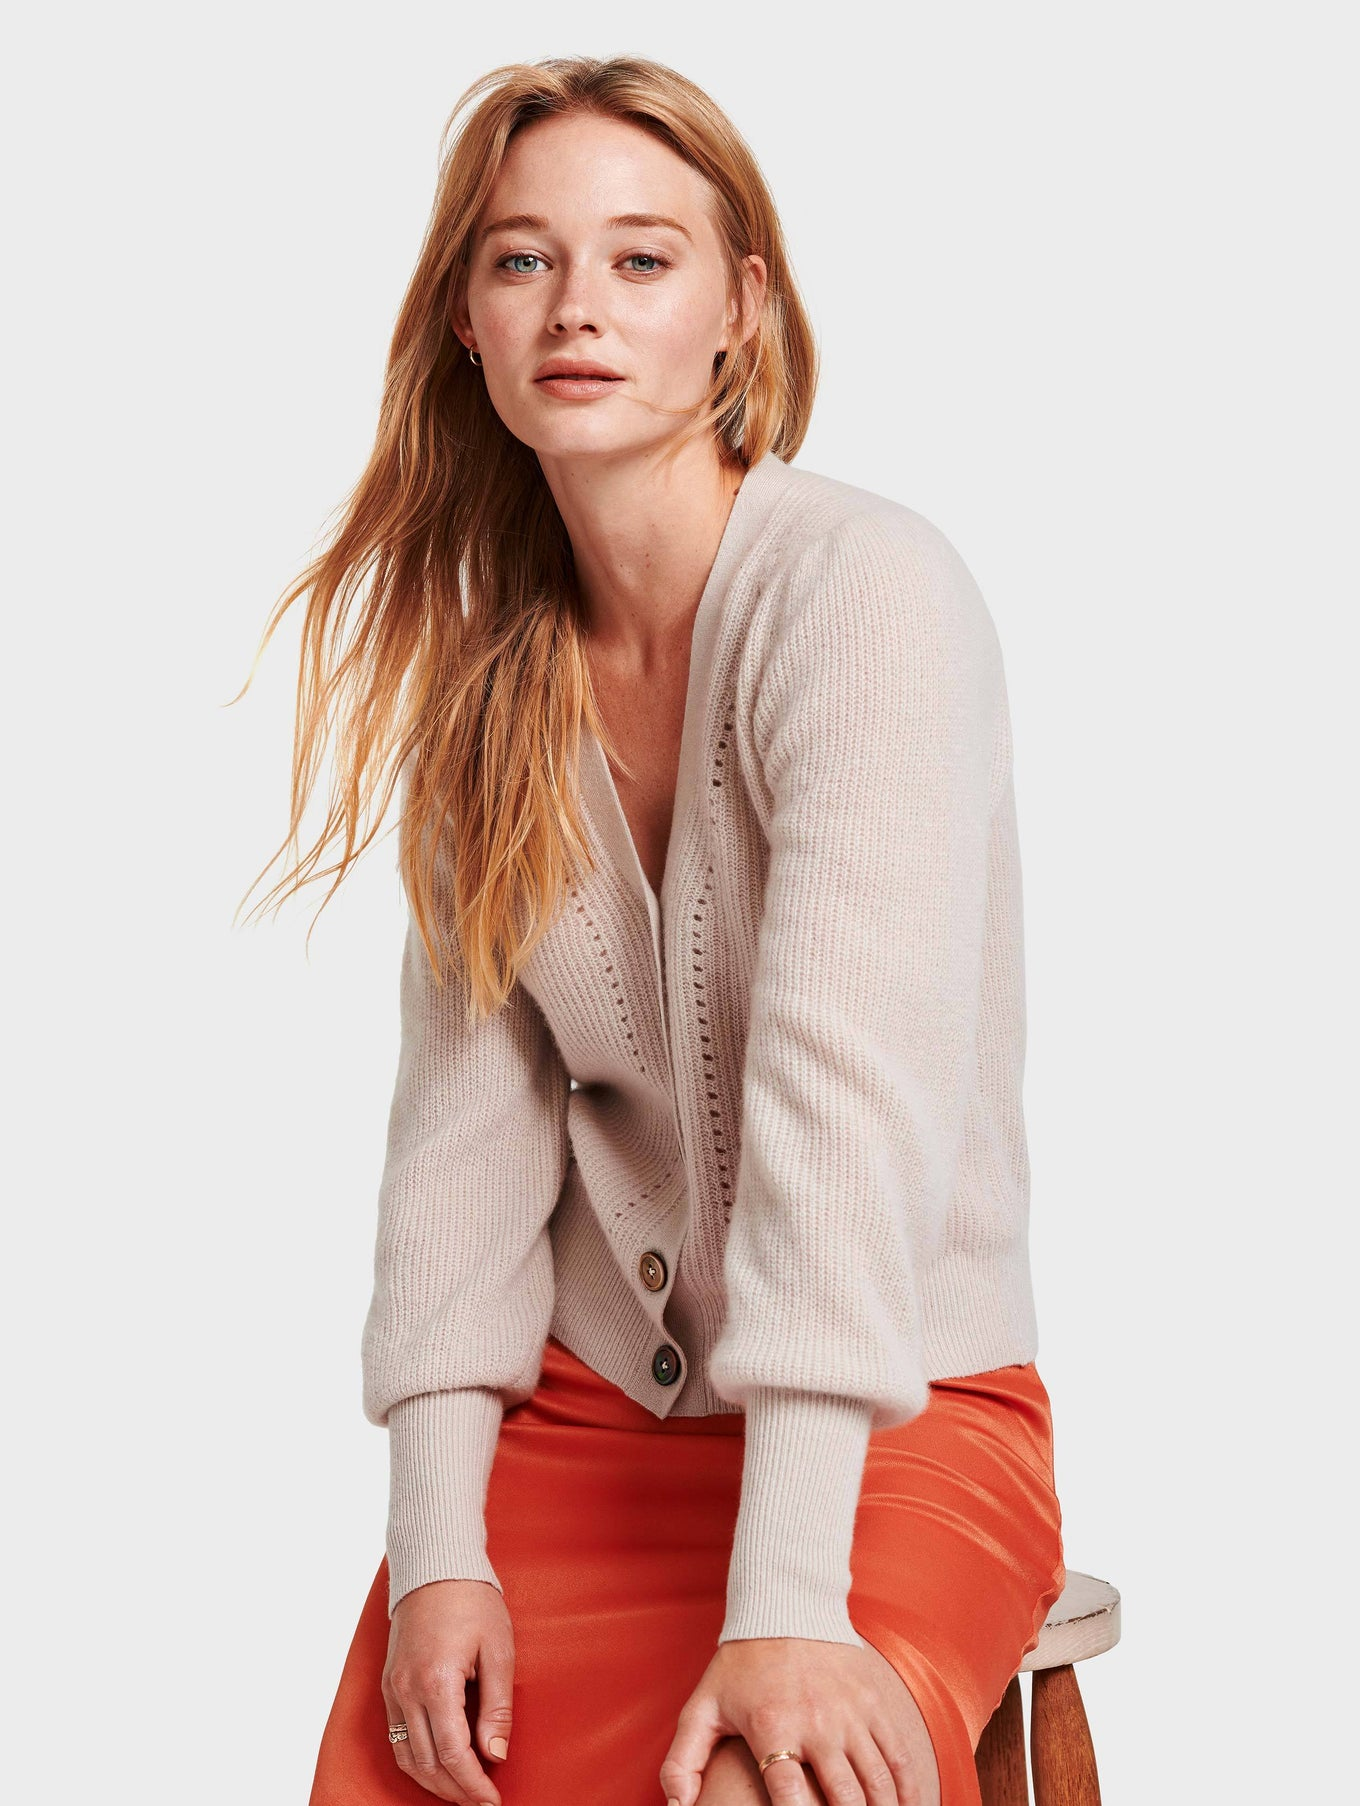 Cashmere Exaggerated Puff Sleeve Cardigan - Sandstone Heather - Image 5